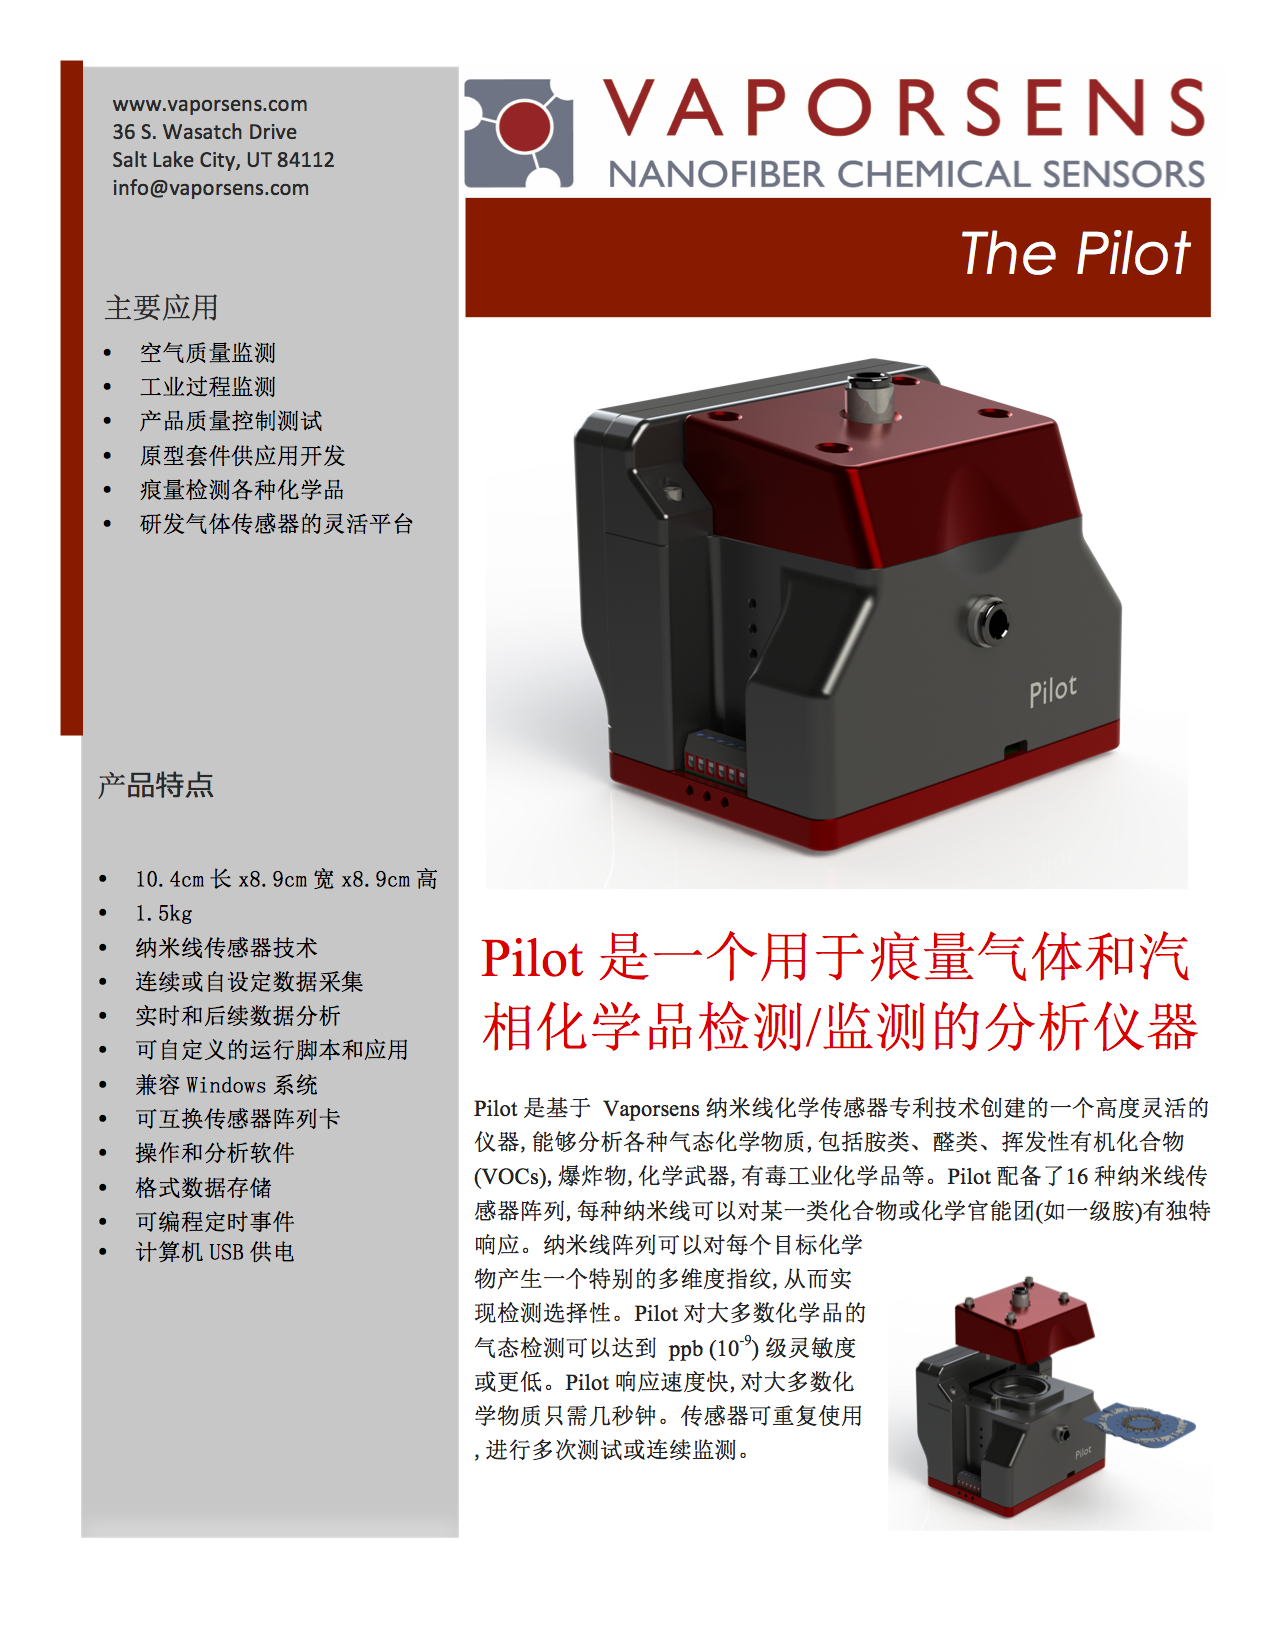 Pilot product brief final_mandarin LZ.png